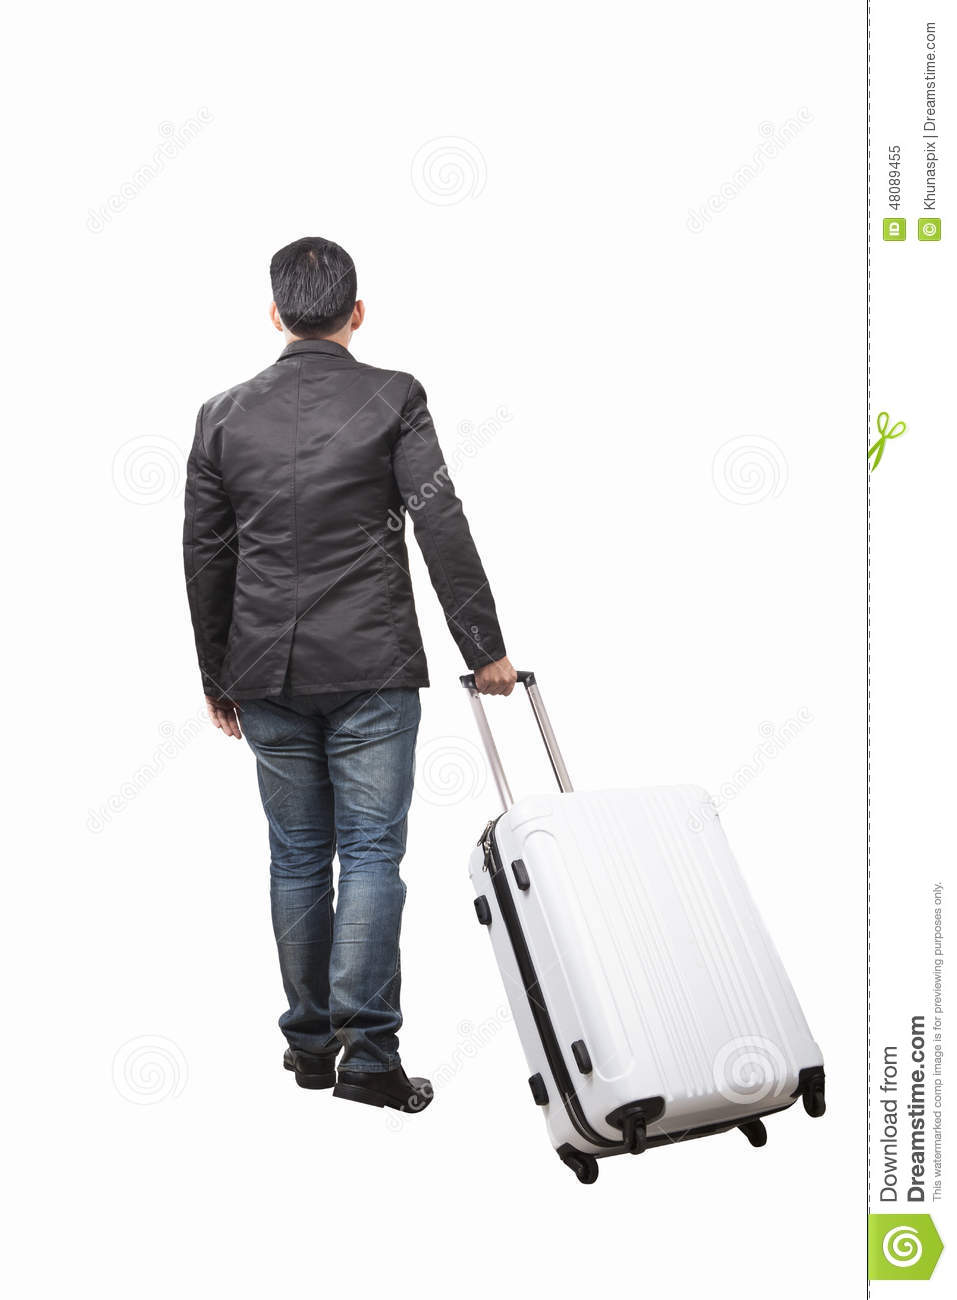 ... And Pulling Belonging Luggage Walking To Stock Photo - Image: 48089455